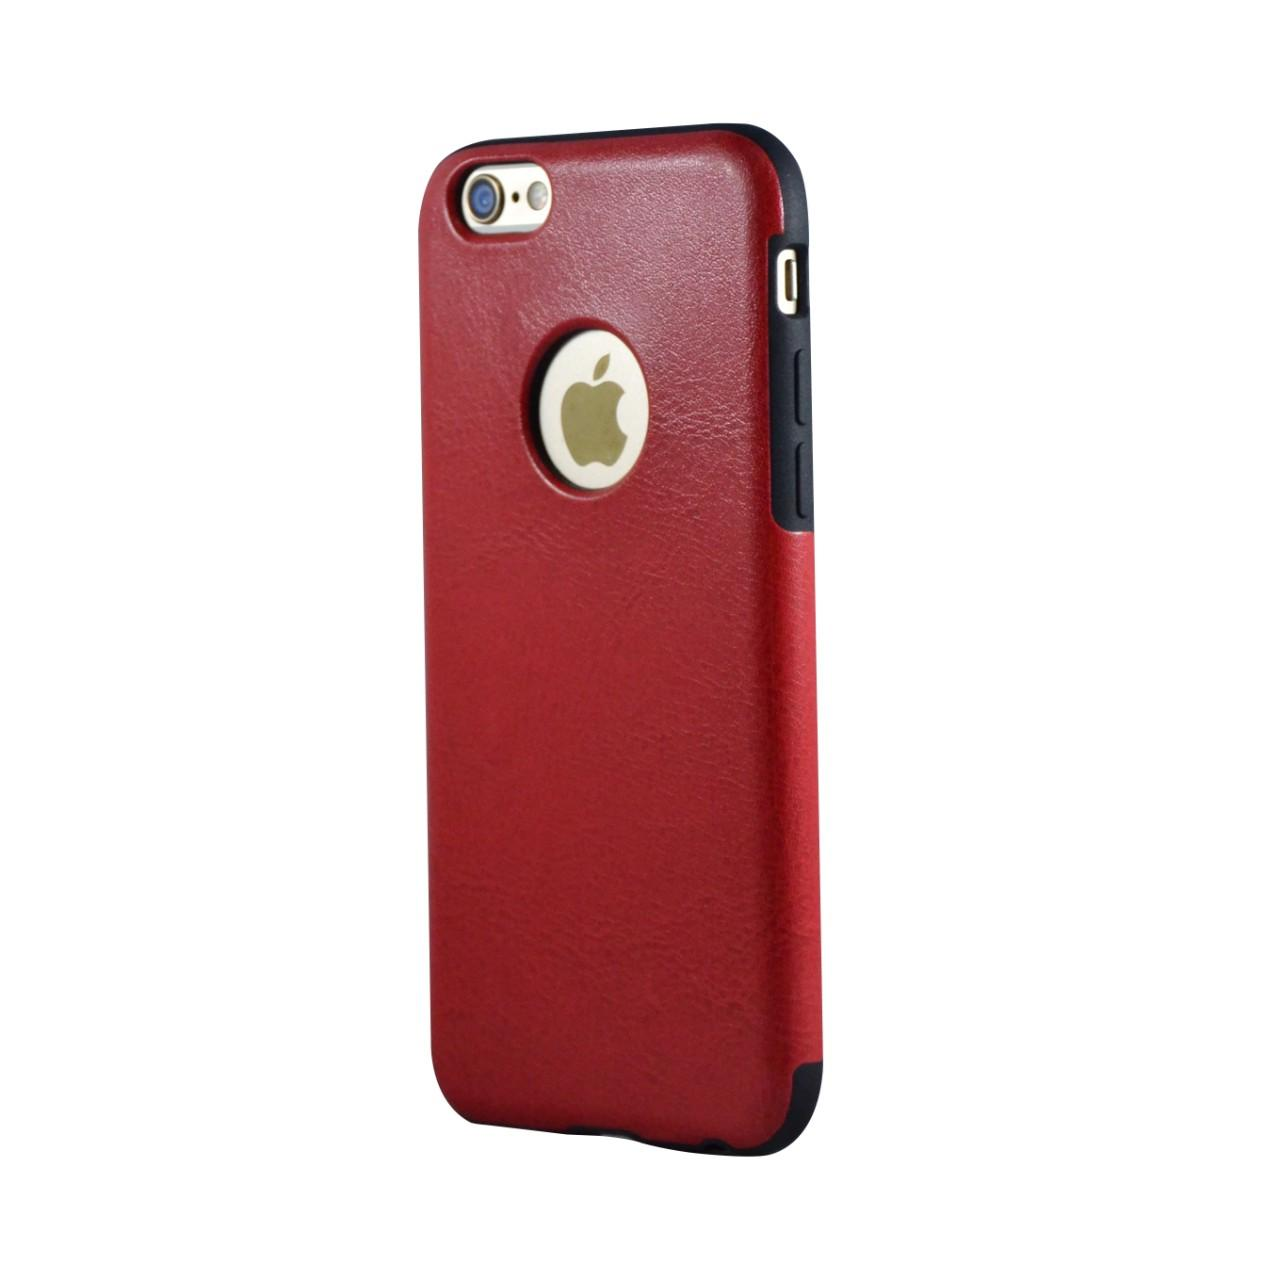 GeekRover IPhone 6 Case